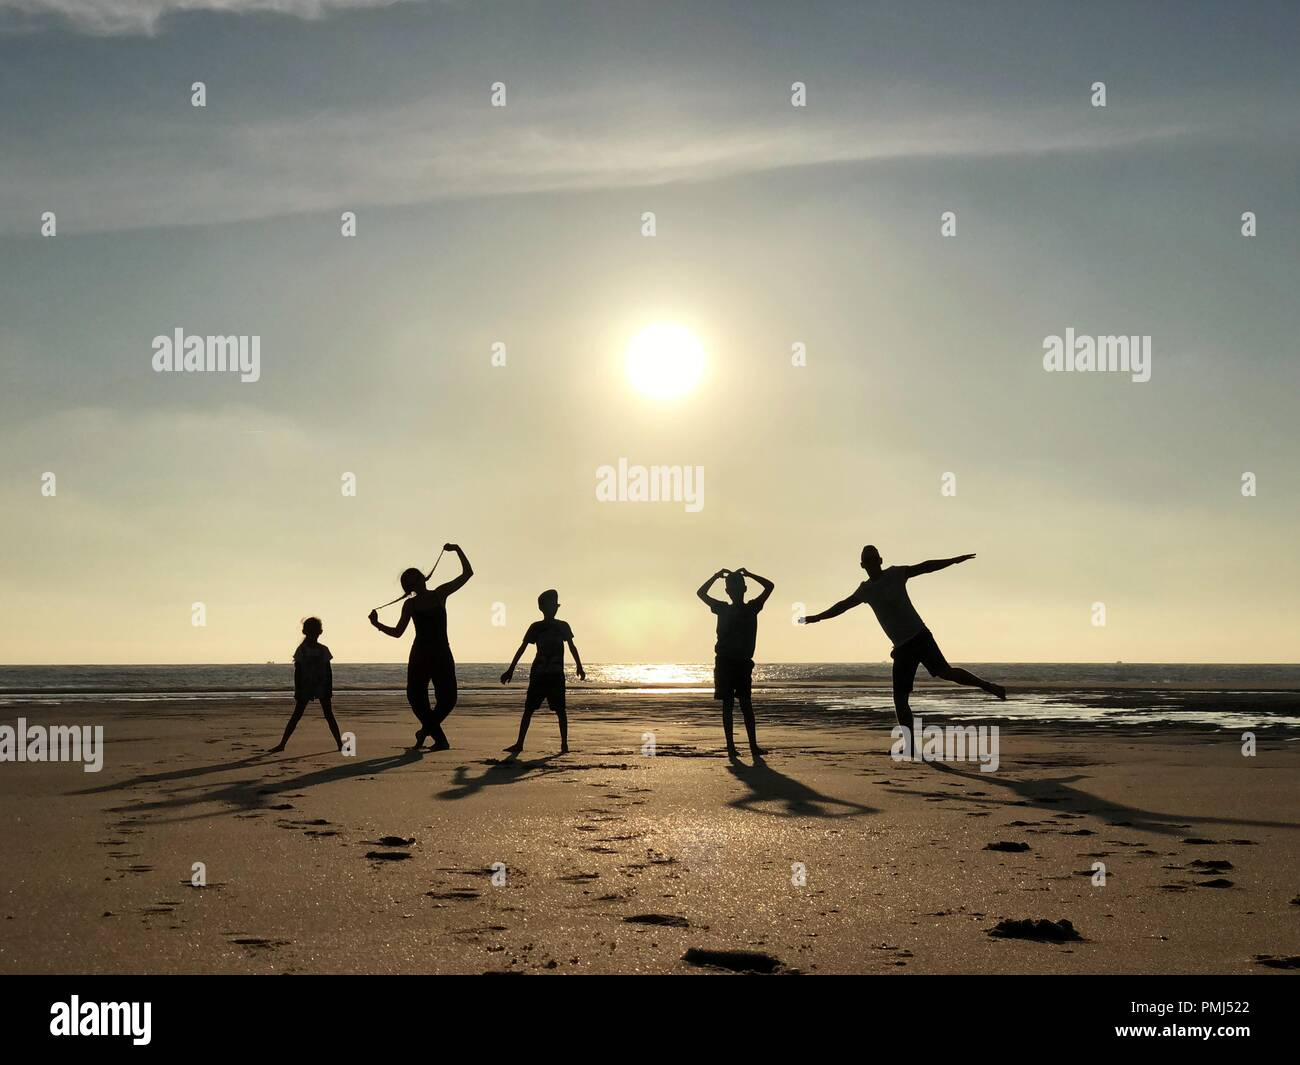 Silhouette of a family messing about on beach, Pointe Espagnole, La Tremblade, Charente-Maritime, France - Stock Image